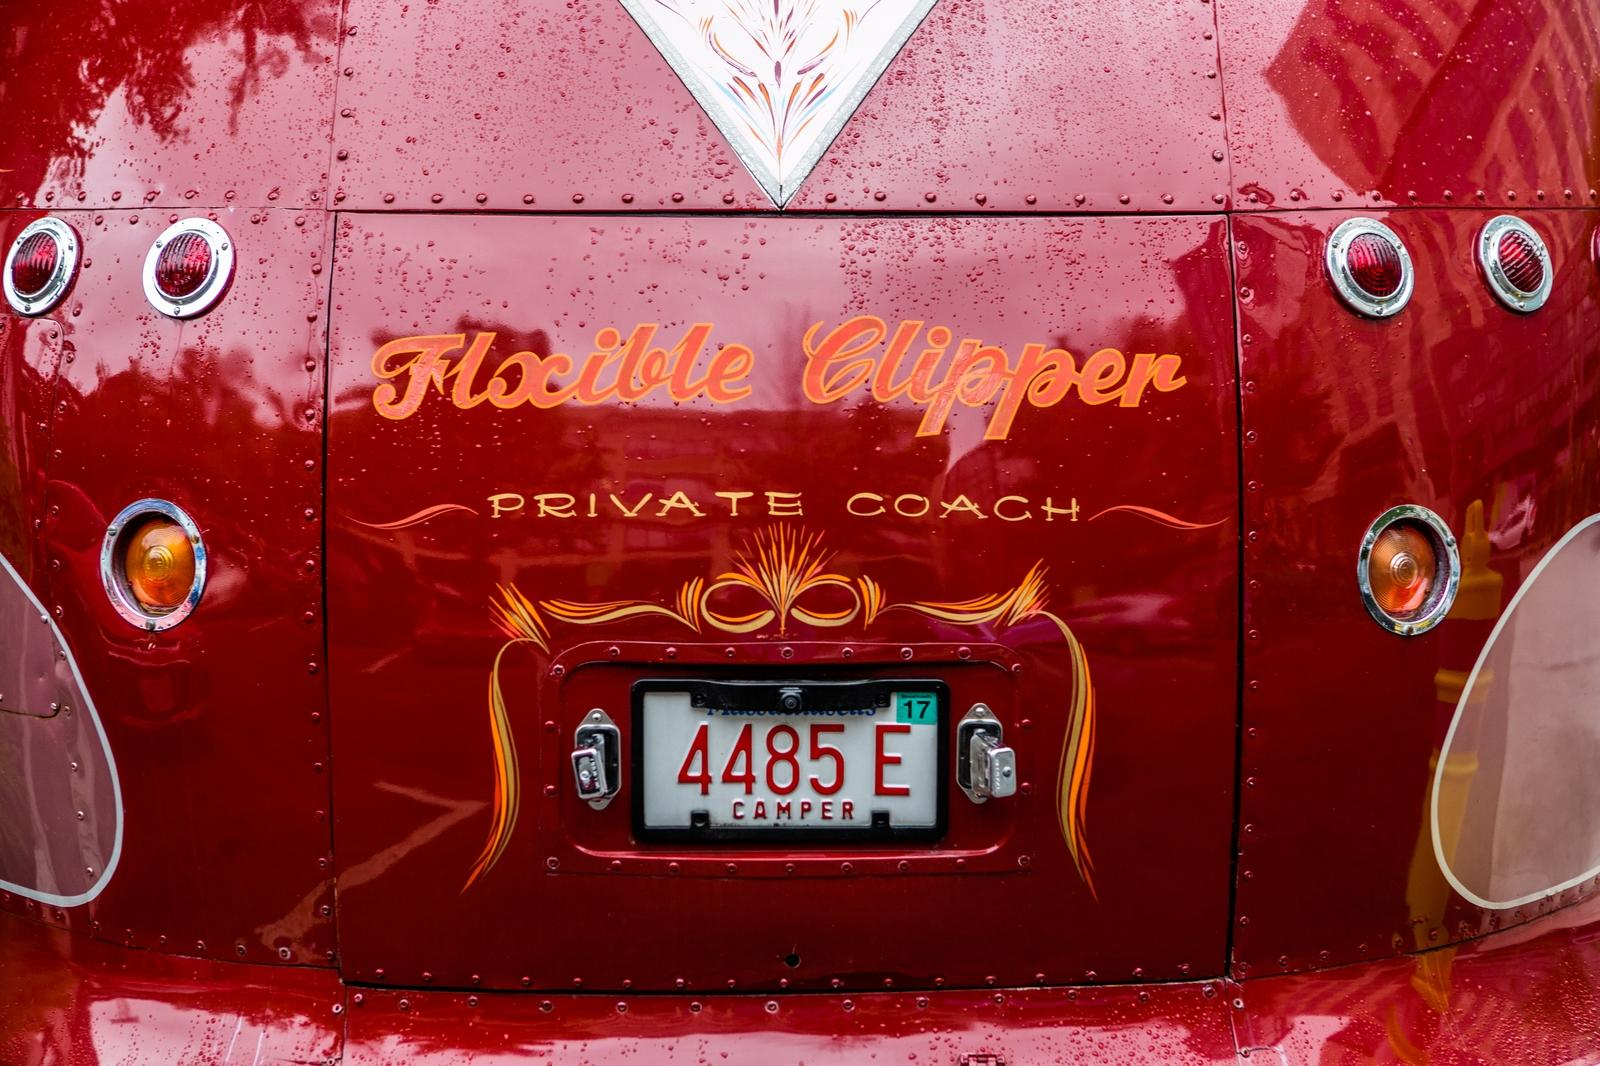 Back bumper of The Verb Bus